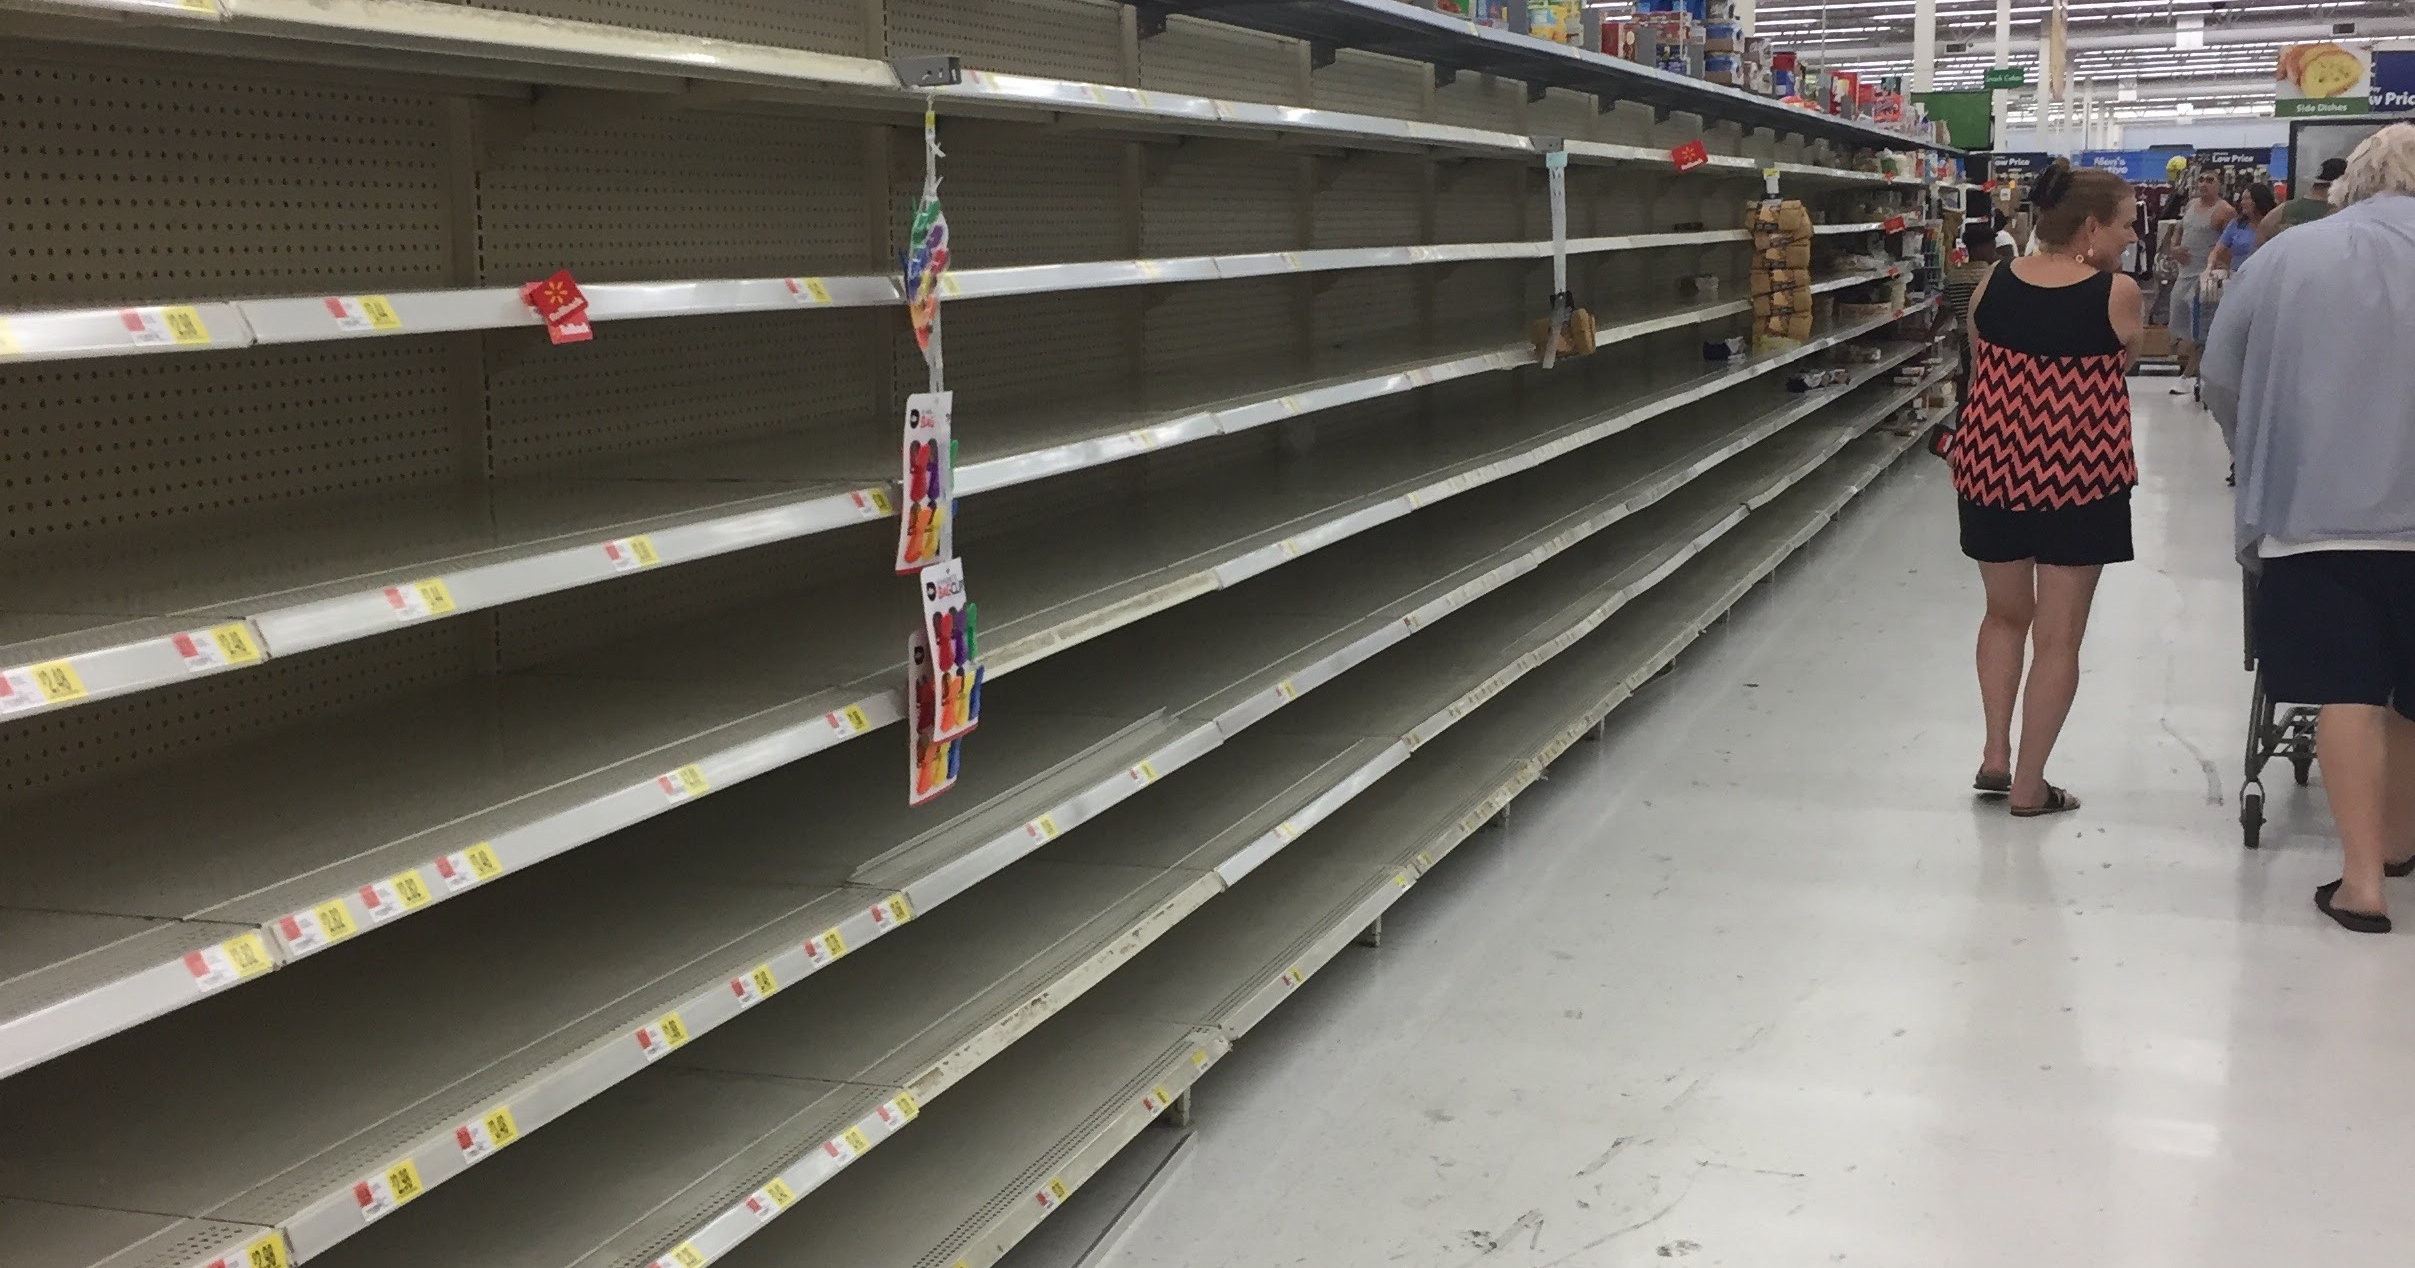 Everyone is Keto, Whole30, or Gluten-free until the threat of a Hurricane